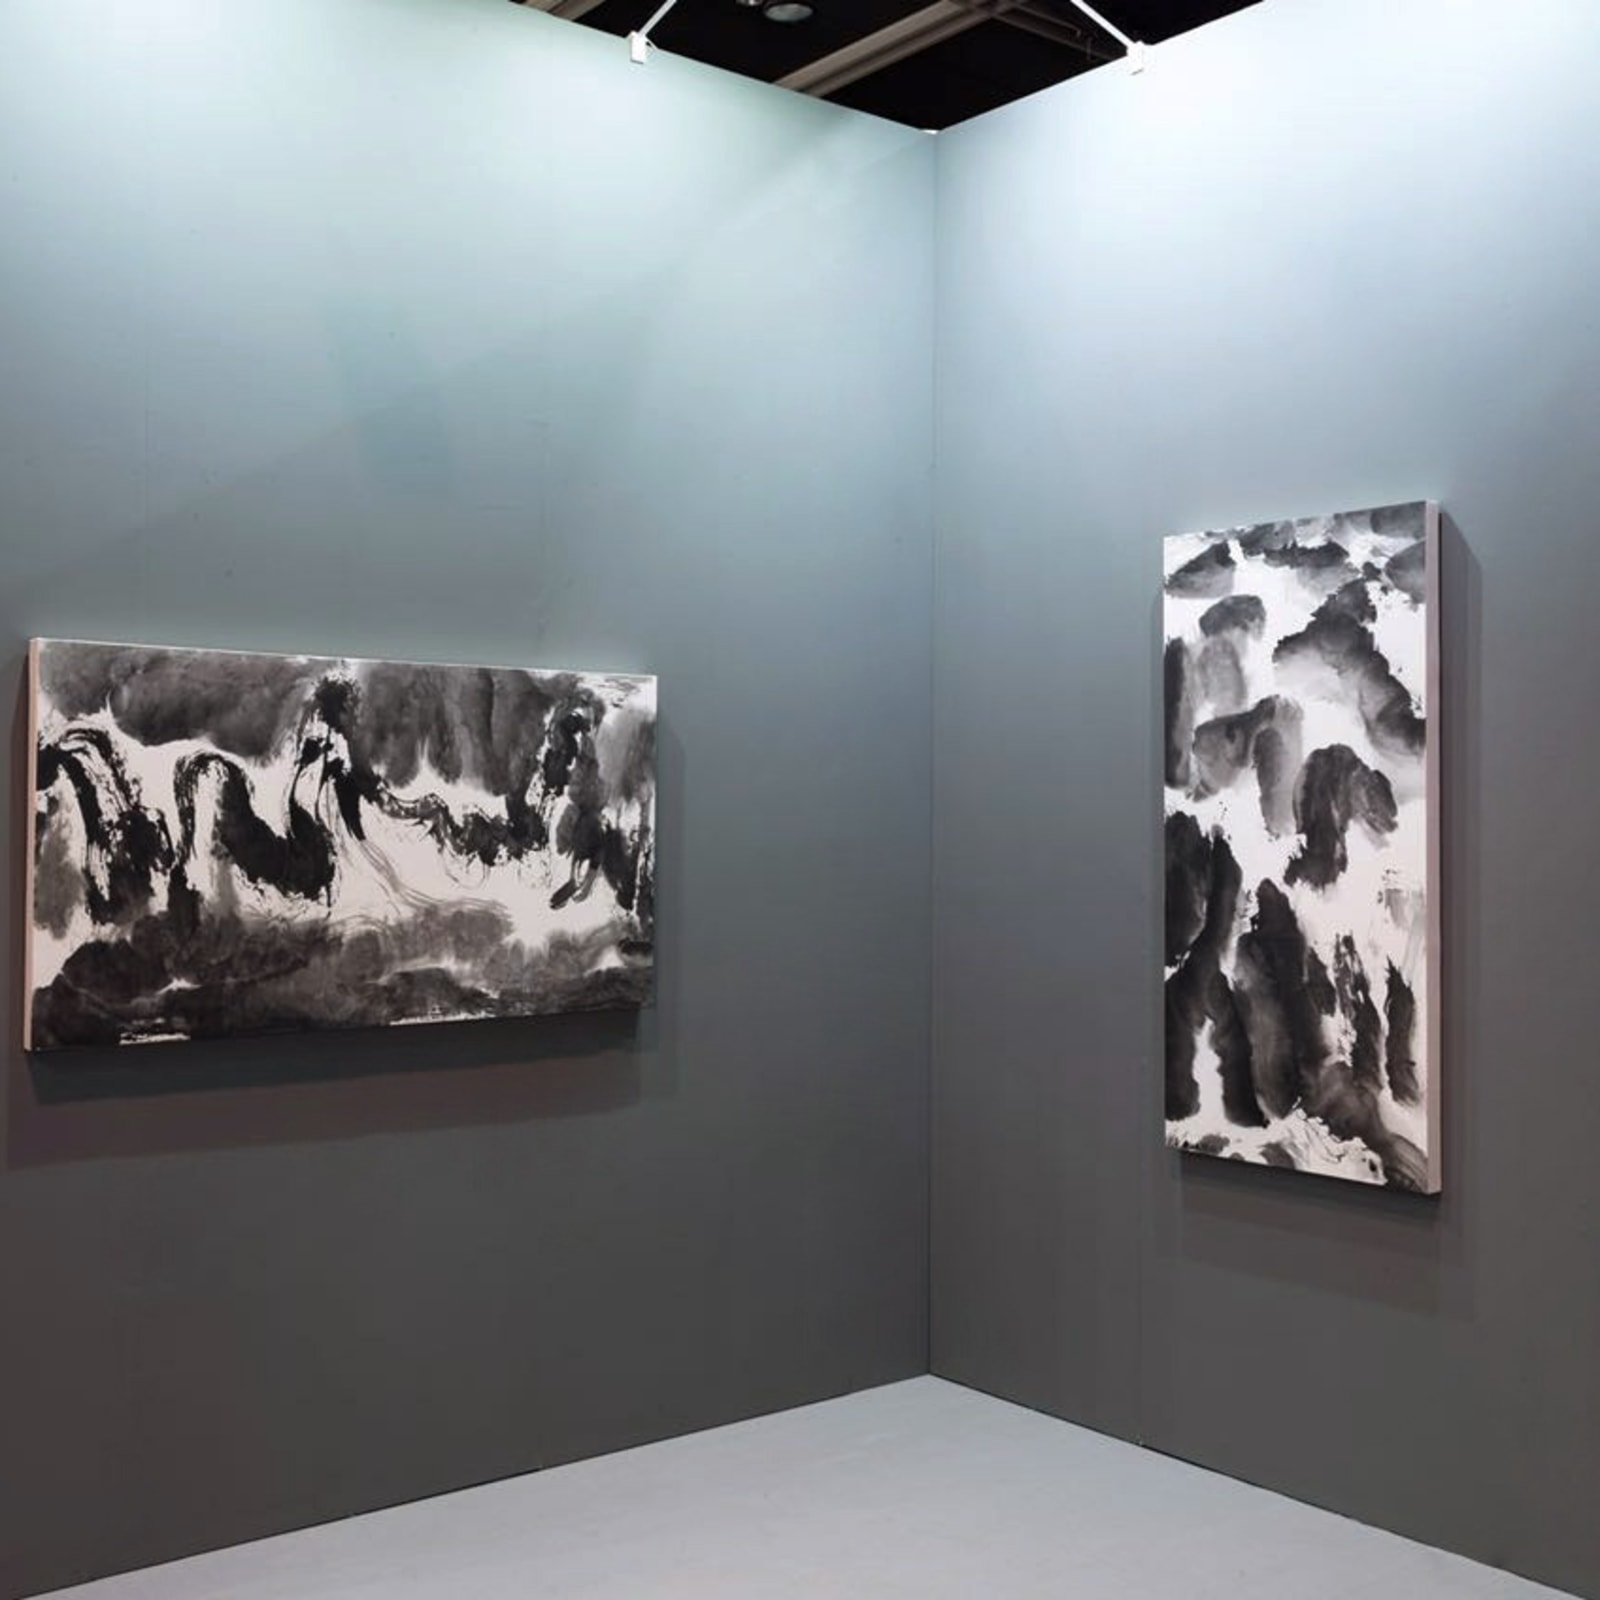 Li Huasheng's artworks, 2016, Hong Kong Convention and Exhibition Centre 李华生作品,2016年,香港会议展览中心